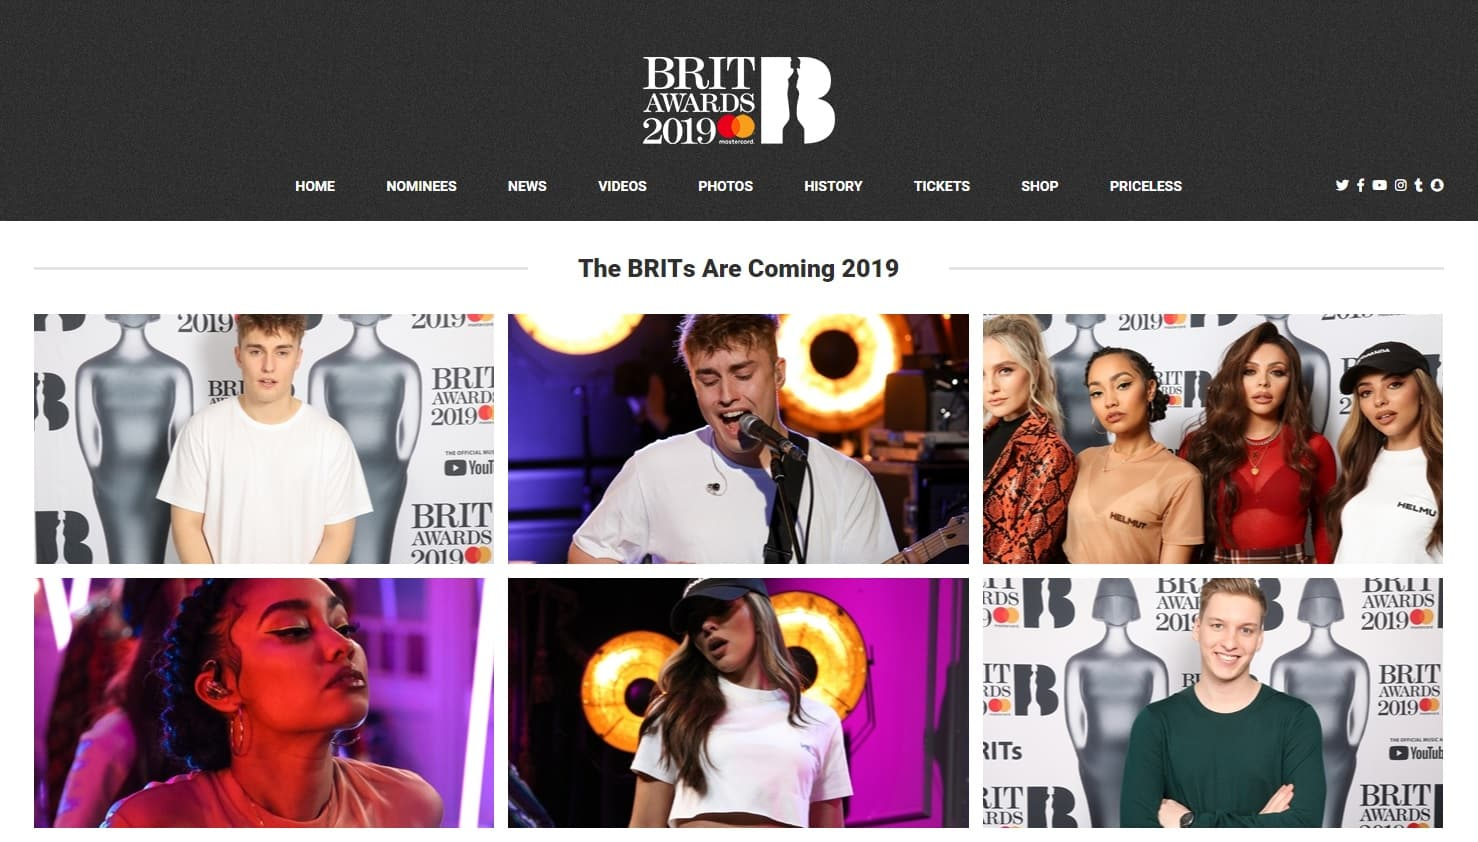 How to watch the Brit Awards 2019 online or on Kodi